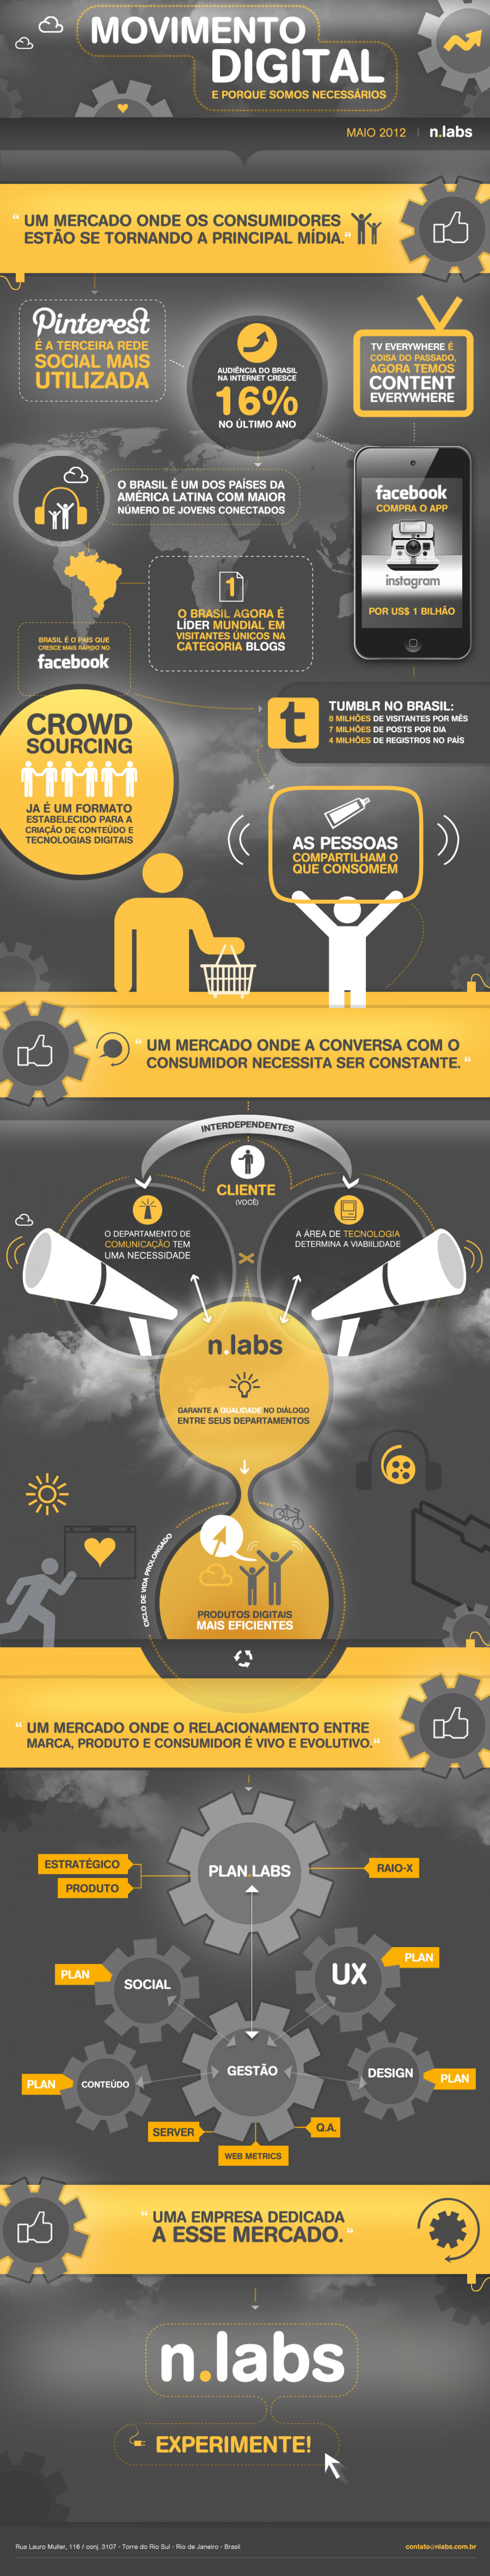 Movimento Digital Infographic